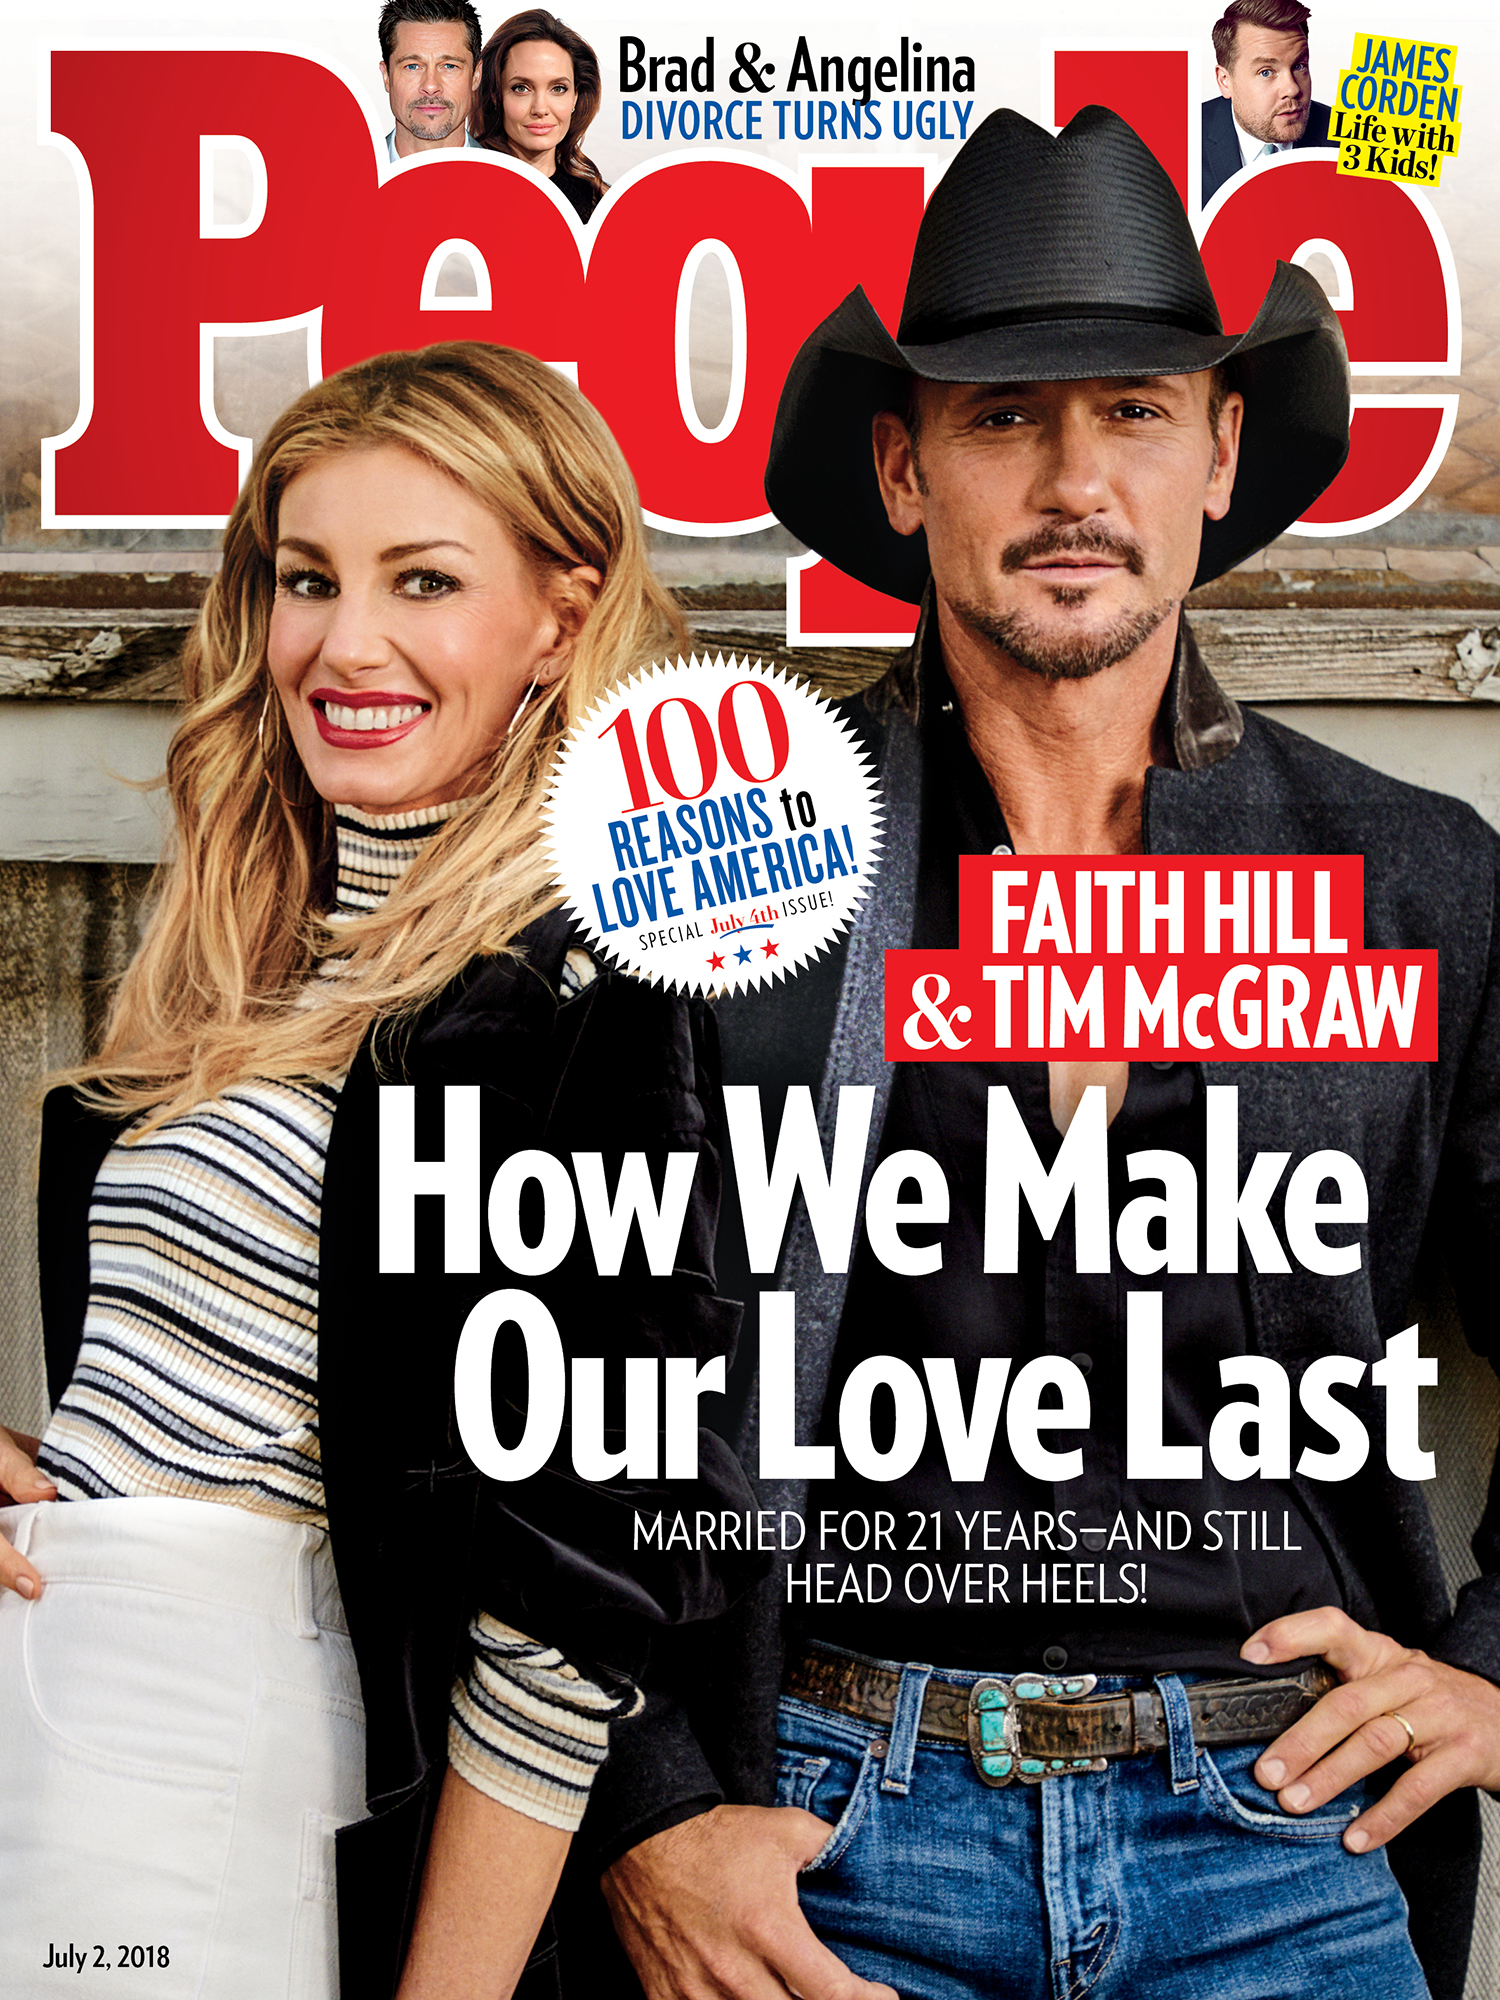 Still in Love After 21 Years! Tim McGraw & Faith Hill Say Date Nights, Prayer and Alone Time Keep Their Marriage Strong cover2